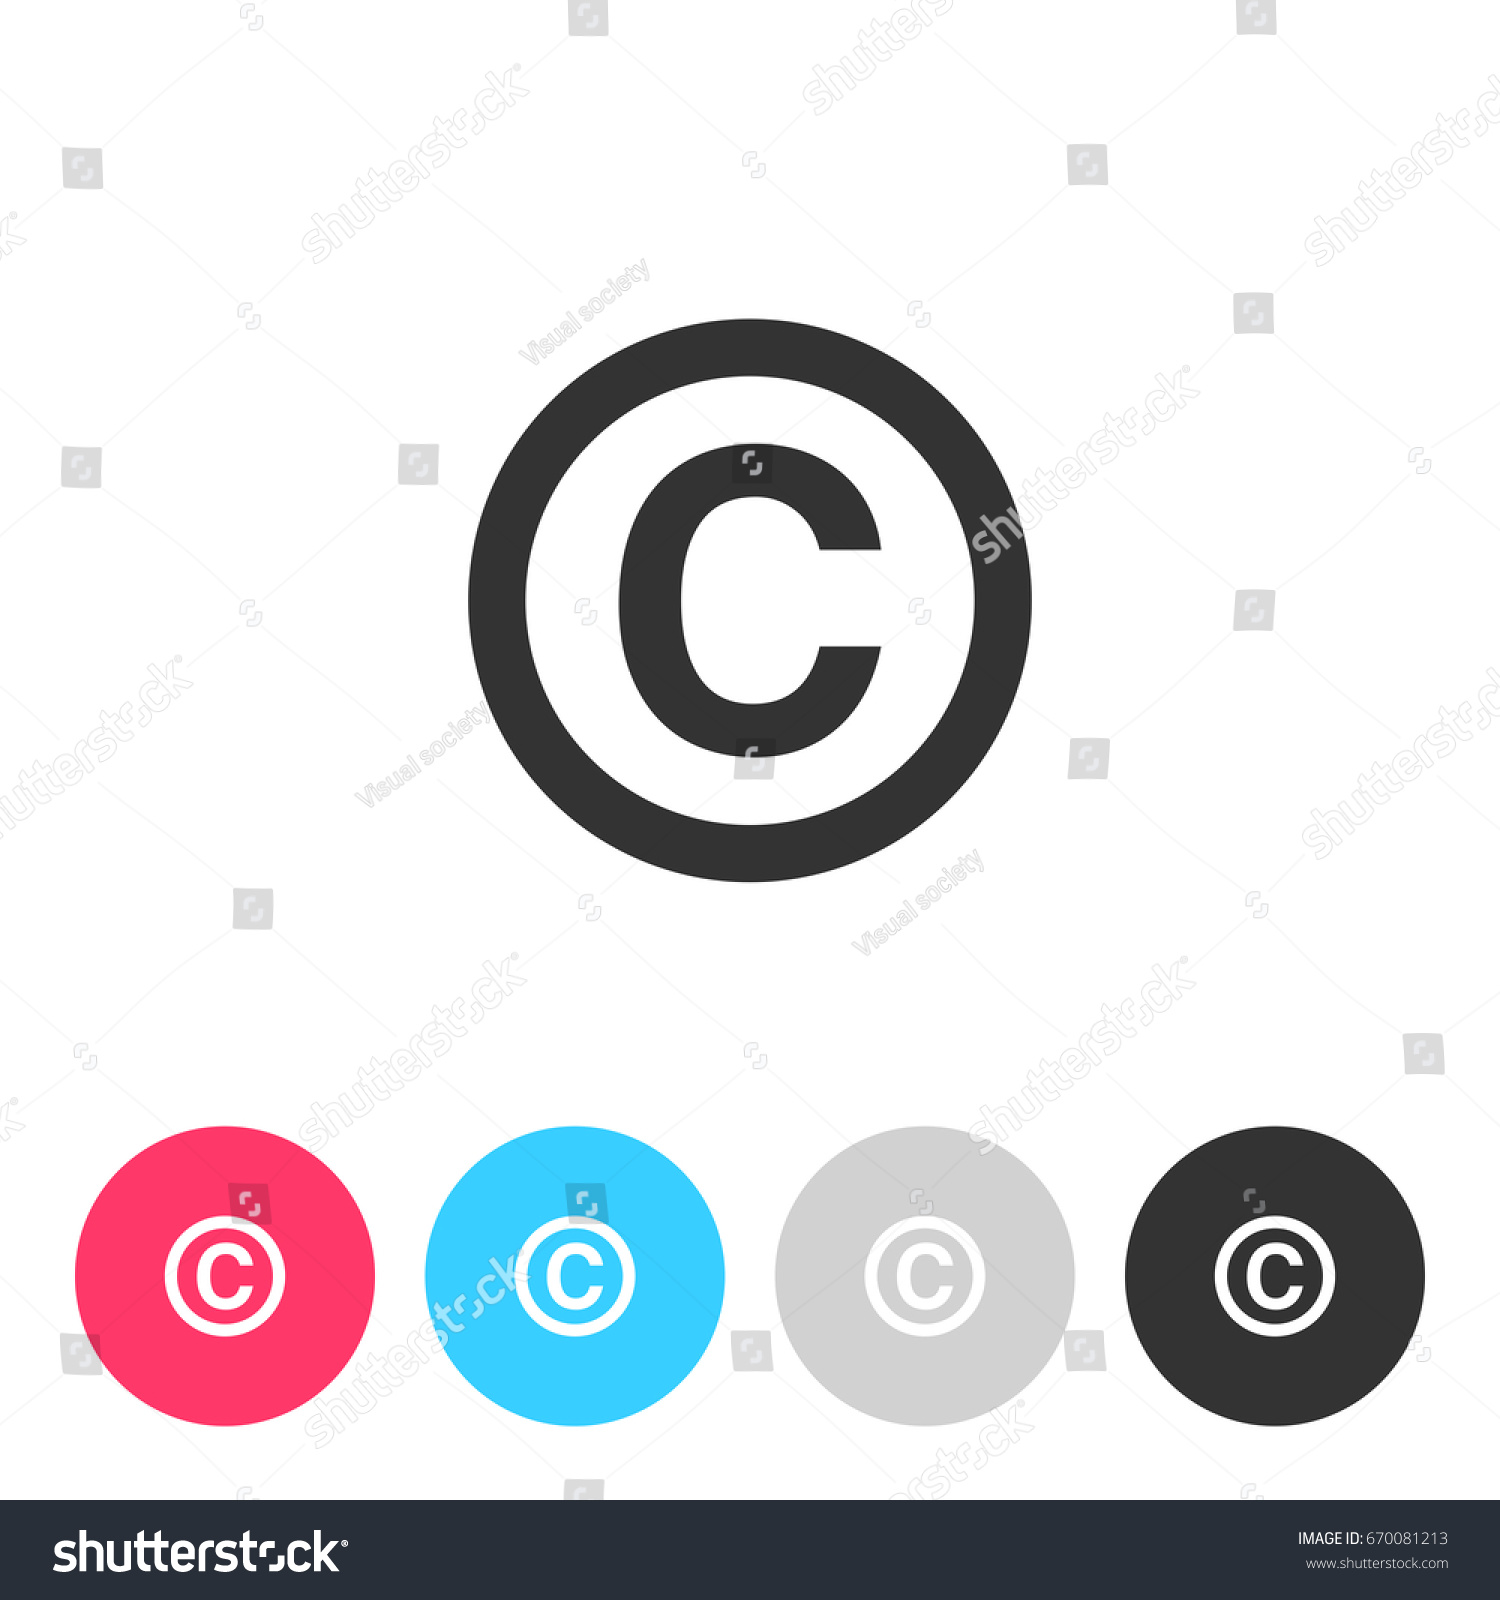 Copyright symbol keystroke gallery symbol and sign ideas symbol for copyright image collections symbol and sign ideas copyright symbol isolated on white background stock biocorpaavc